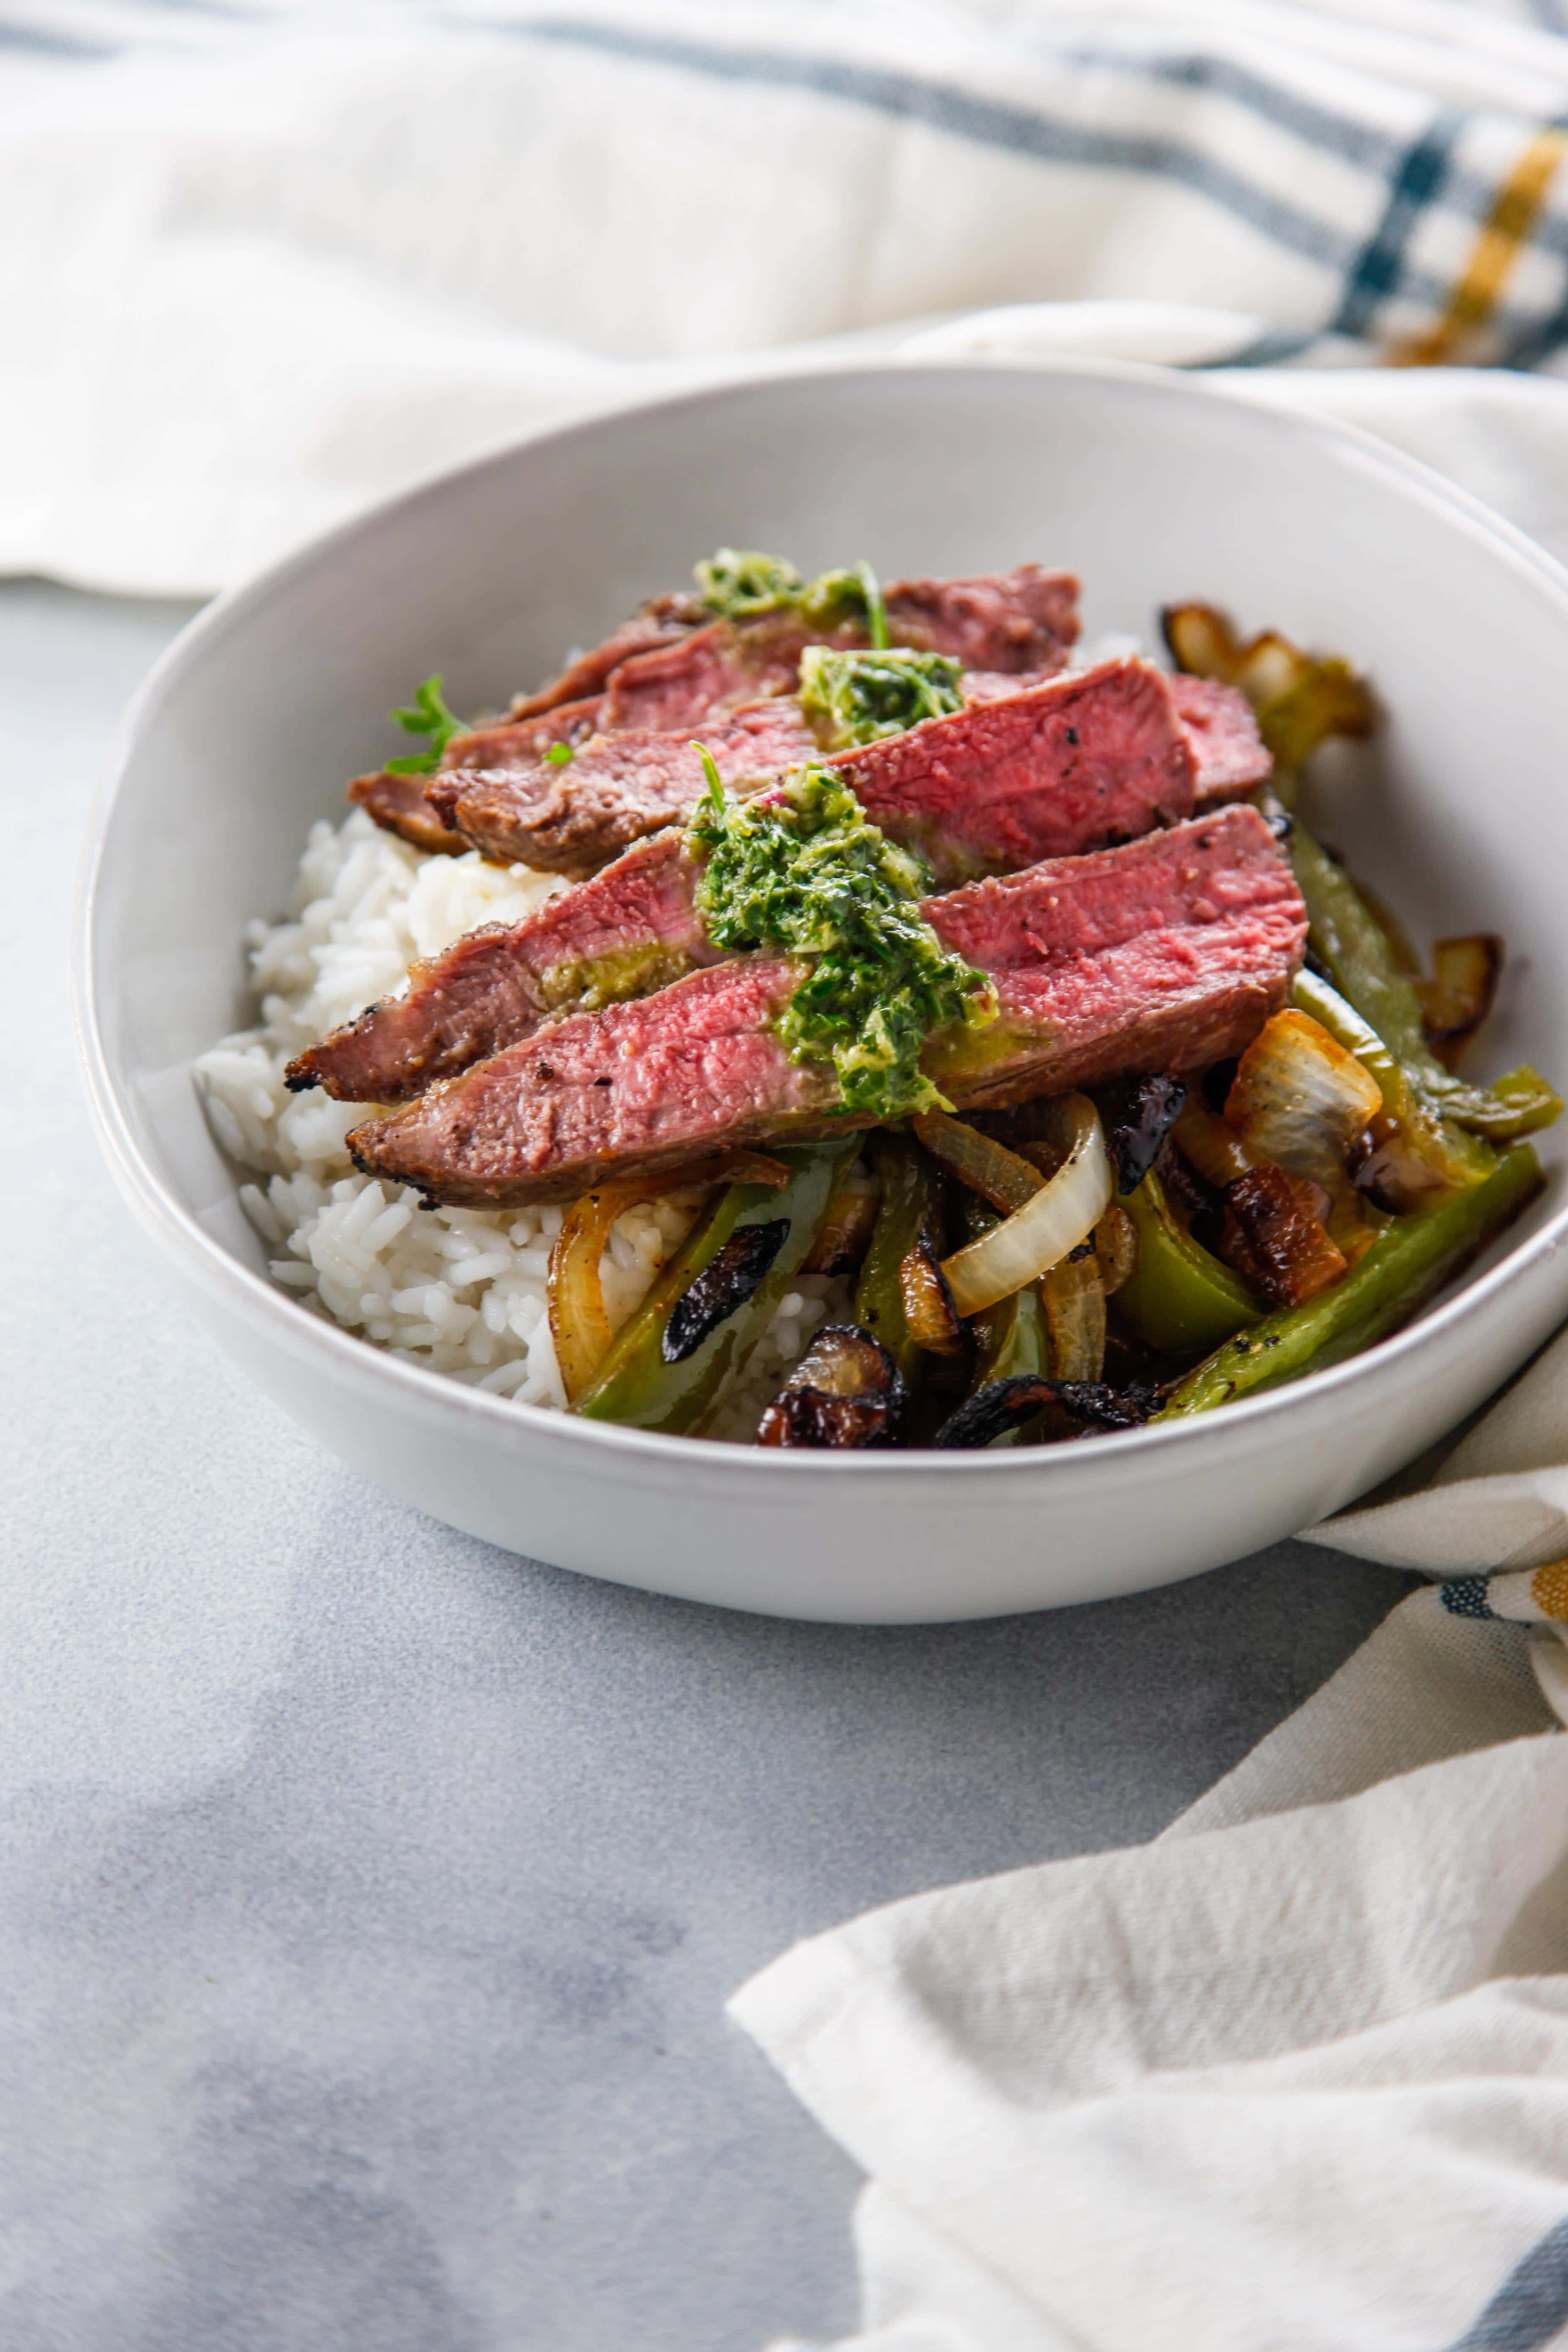 Broiled Flank Steak with Chimichurri in a white bowl with onions and peppers.